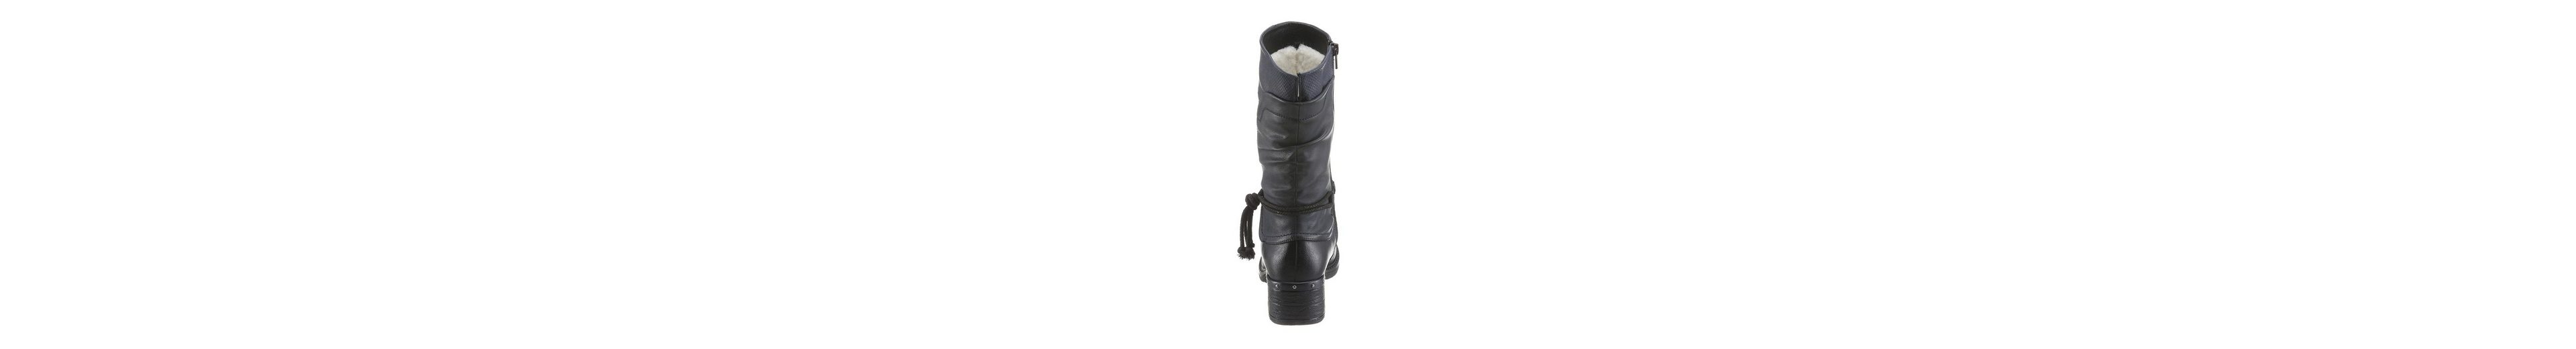 Rieker Winterstiefel, in derber Optik